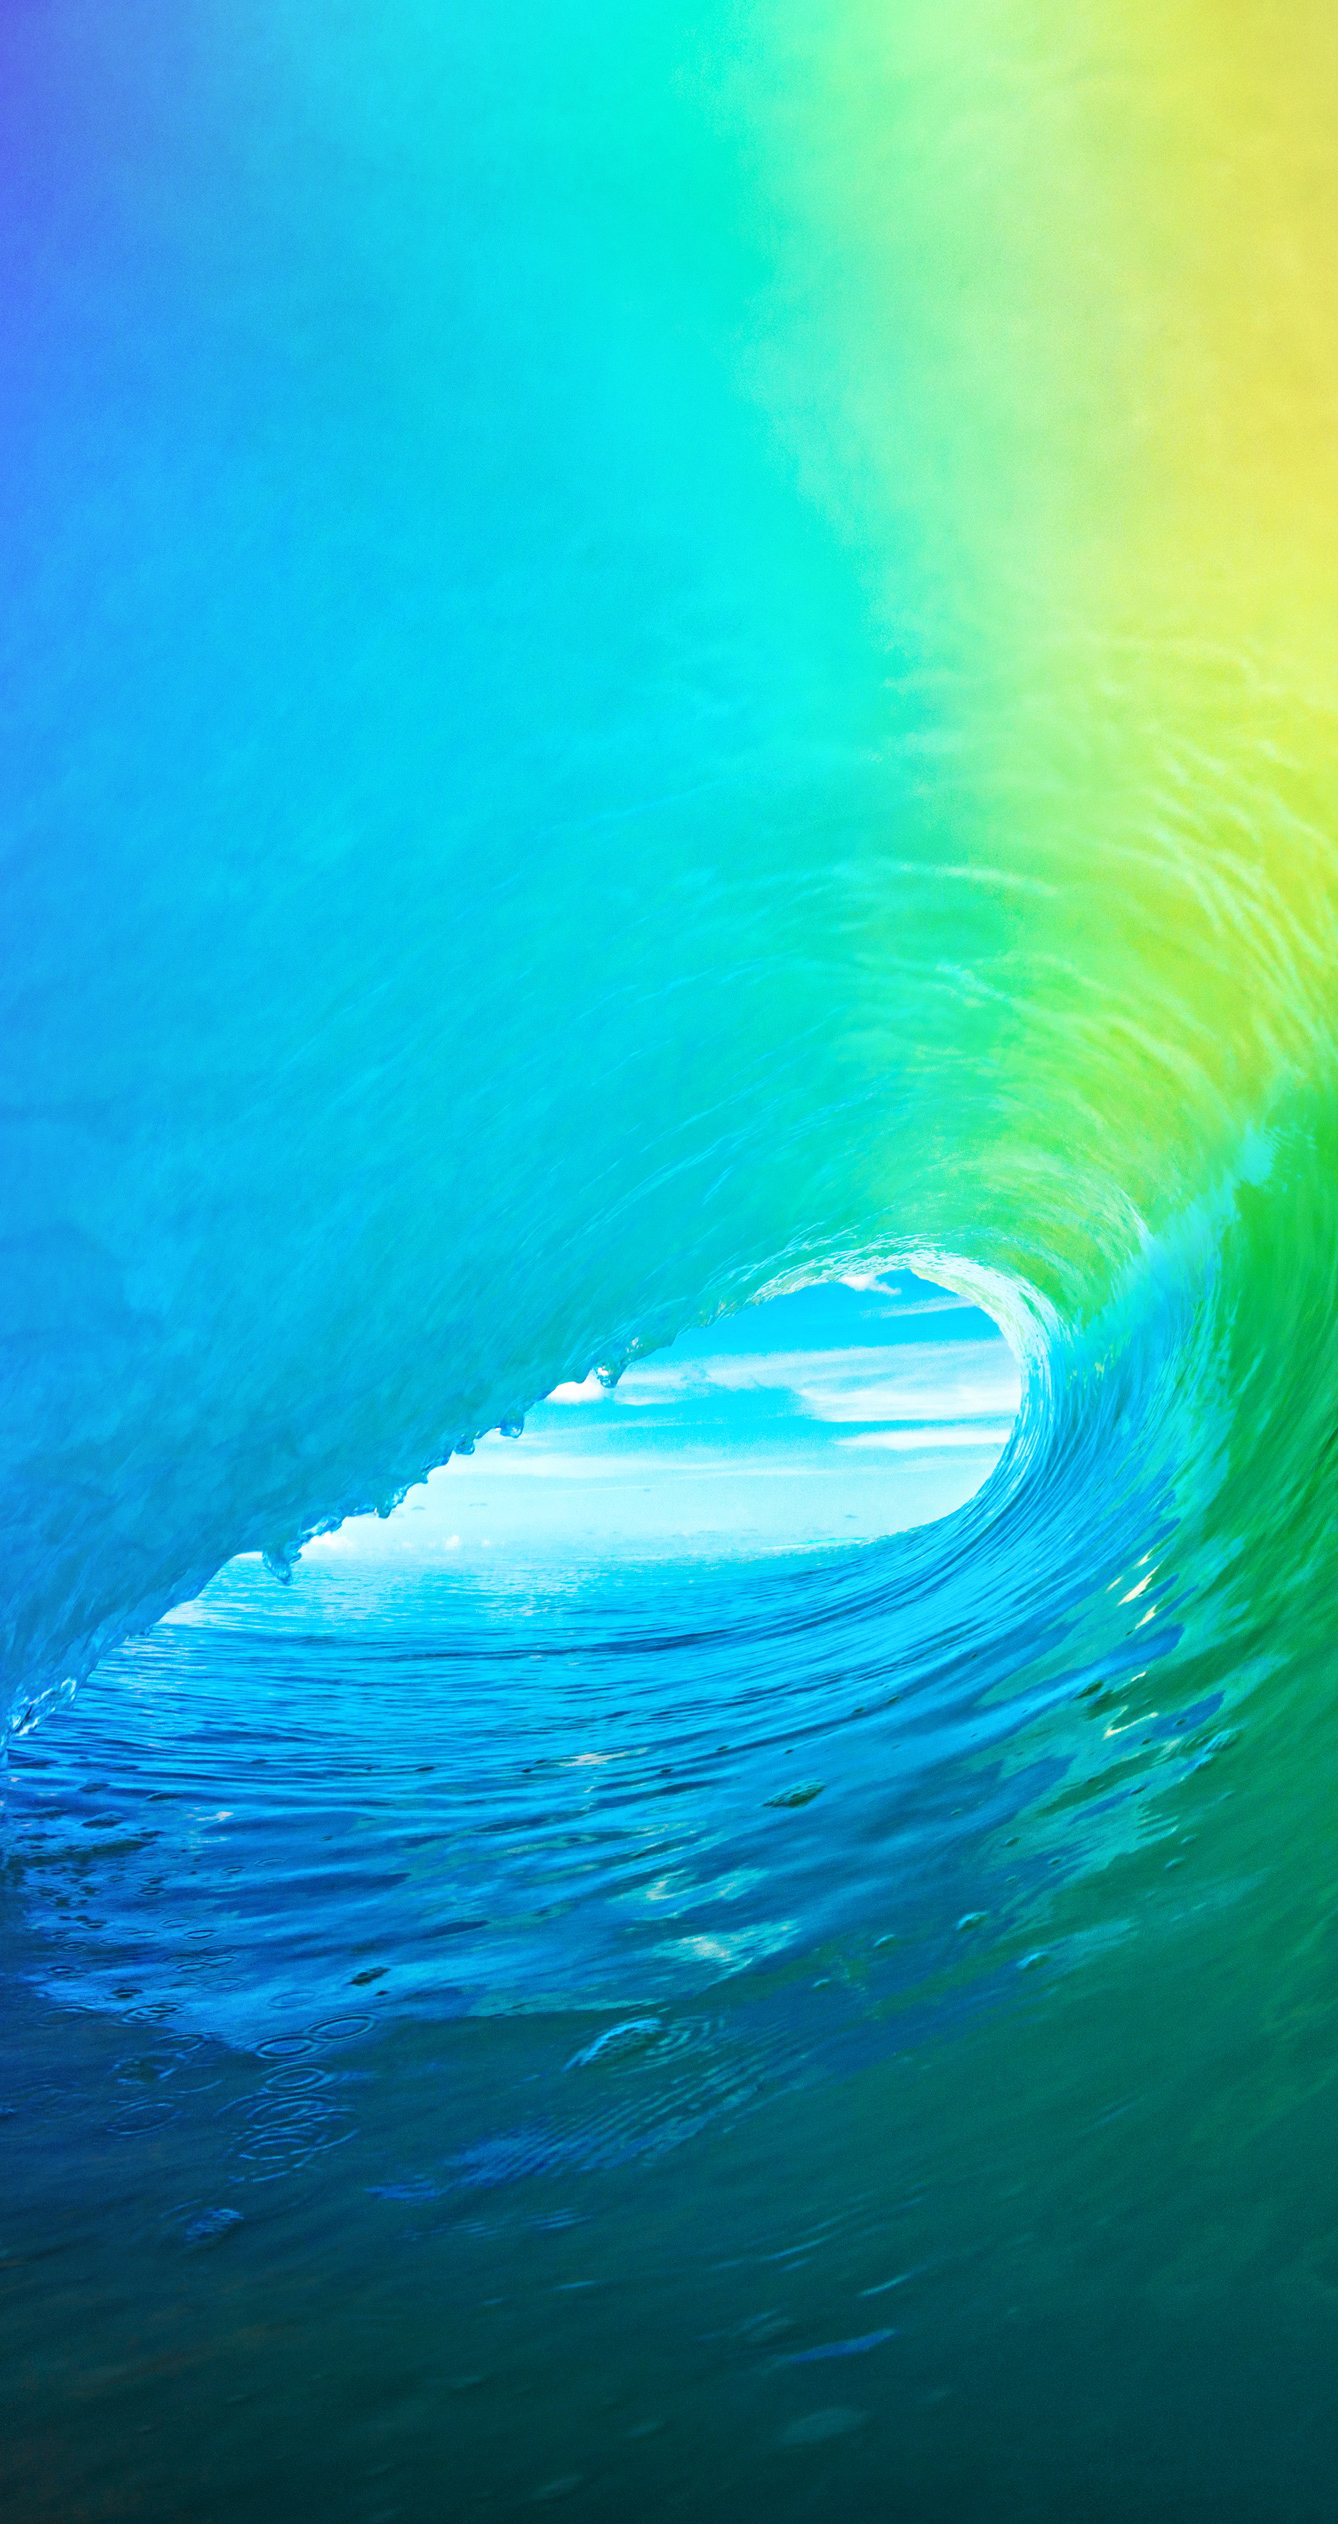 Wallpaper Fix For Iphone X Download The Colored Wave Default Ios 9 Wallpaper